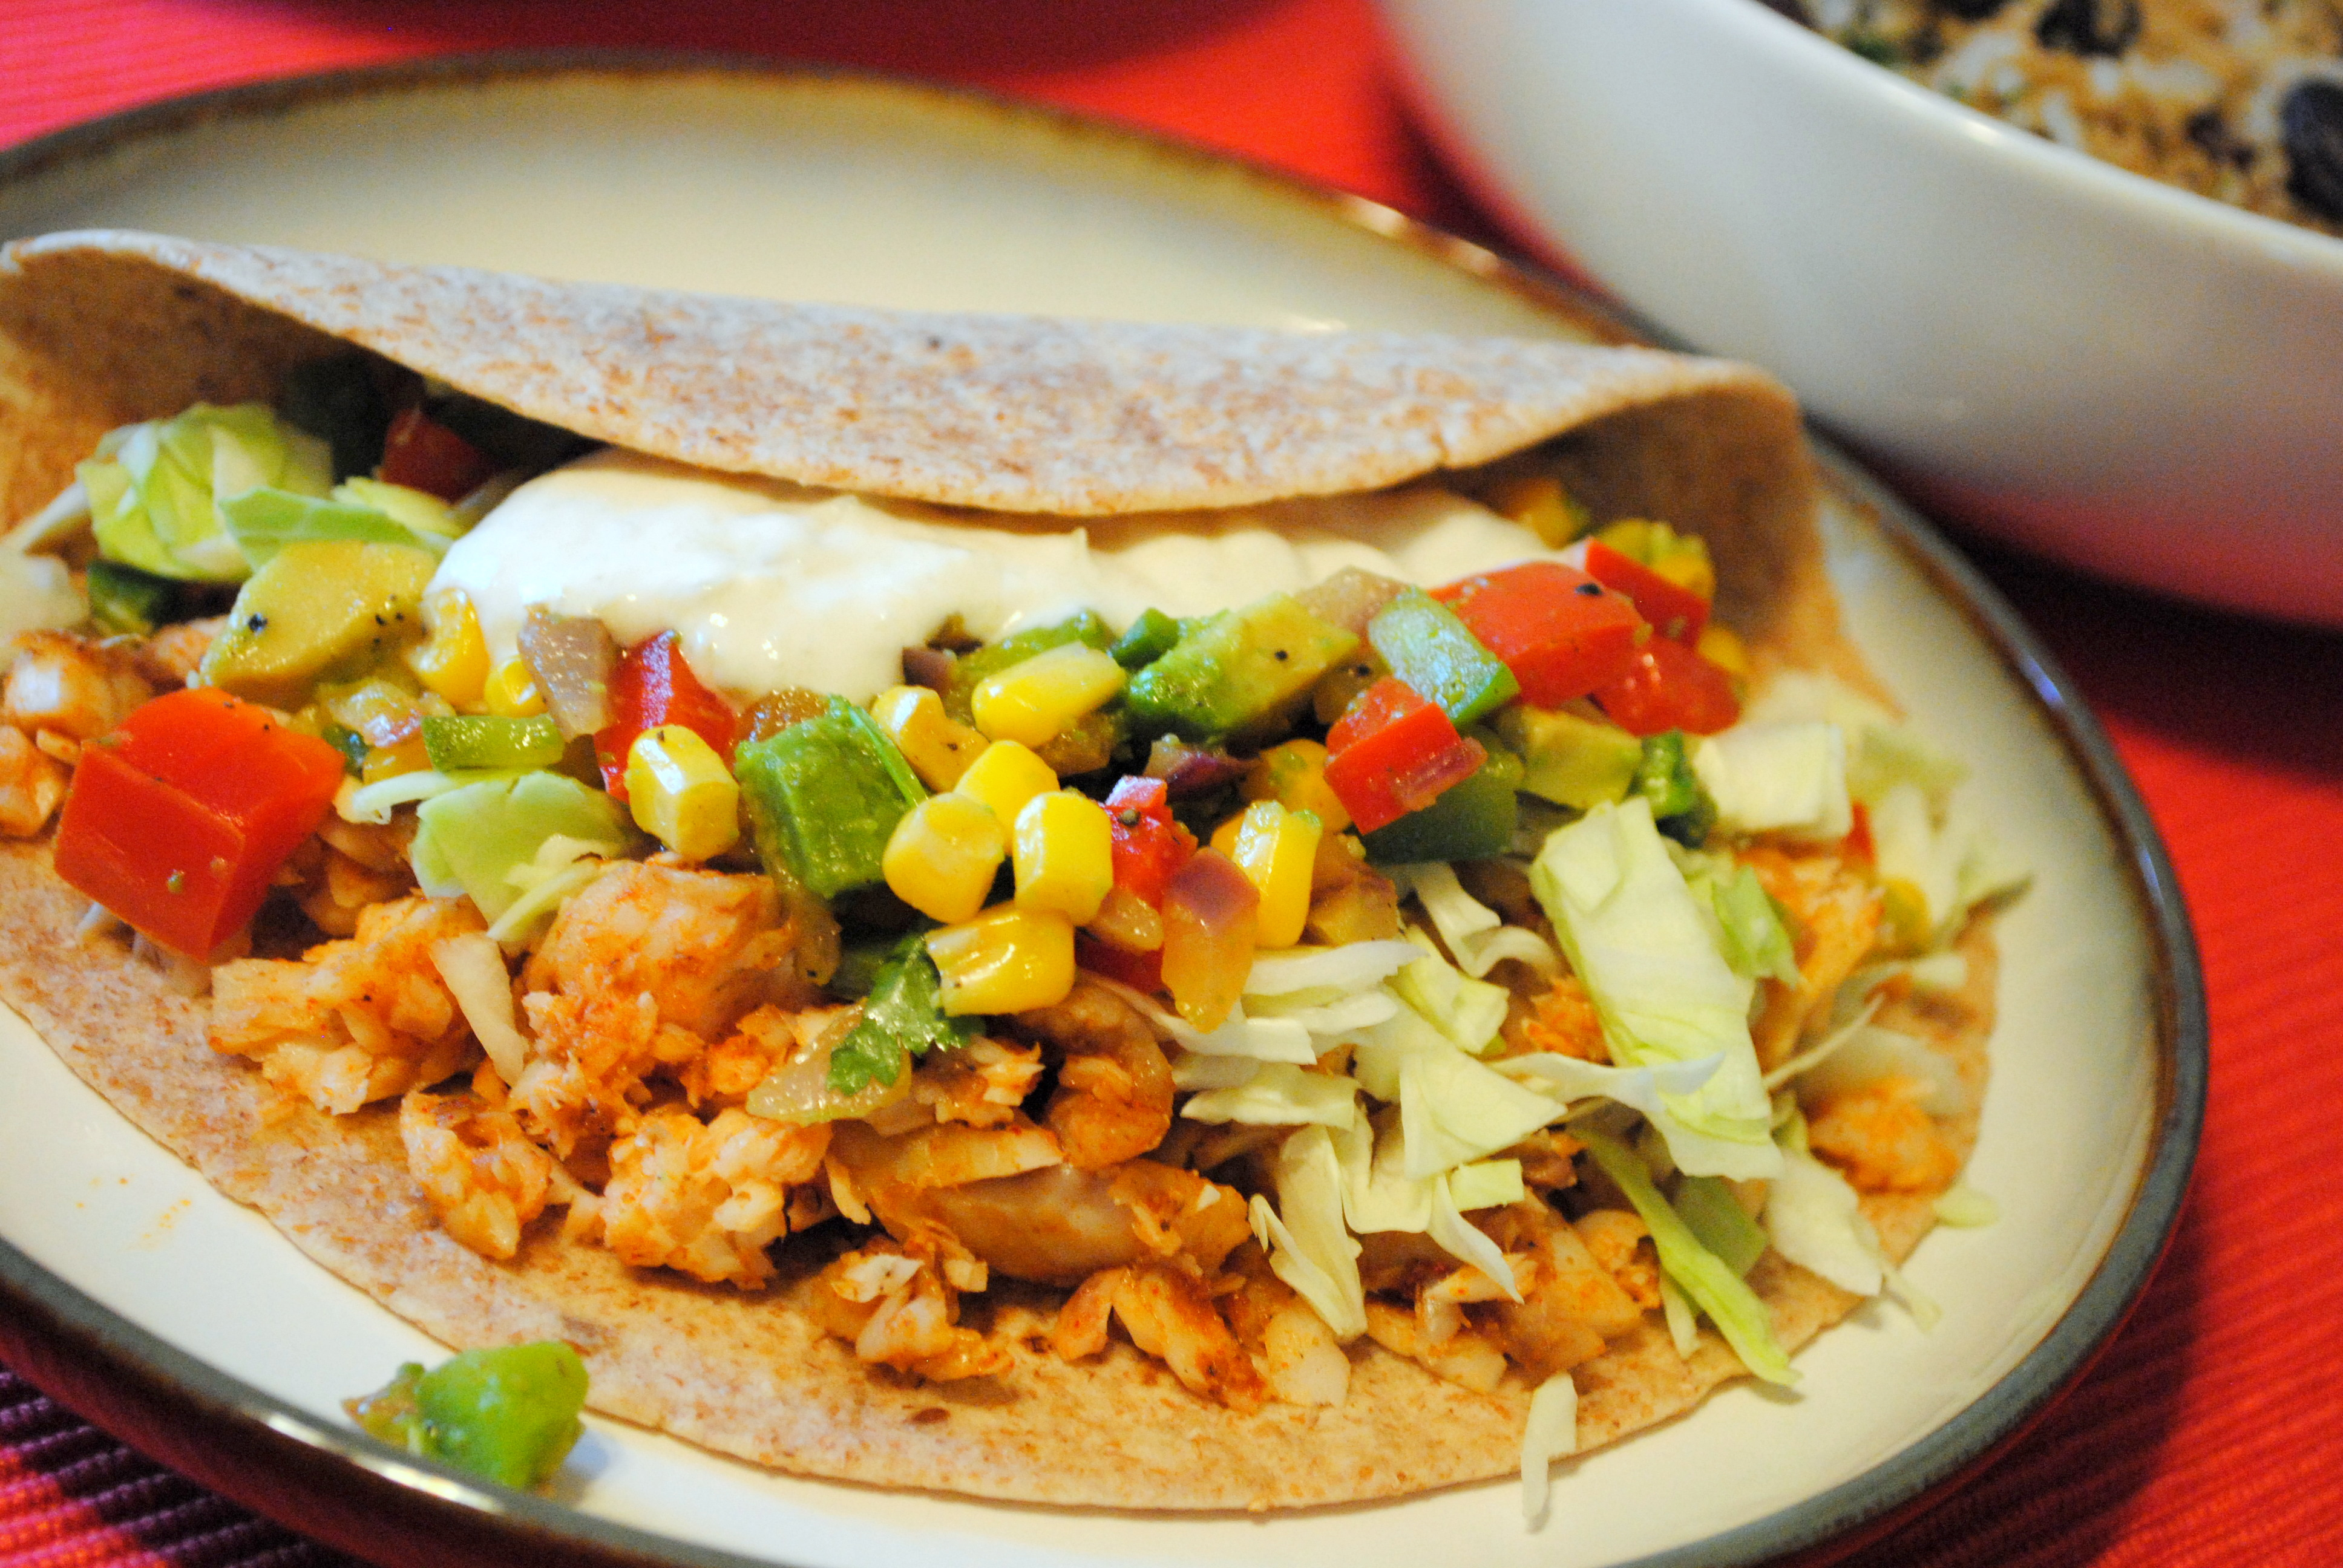 Home catering suddenly got a whole lot more professional for Fish taco salsa